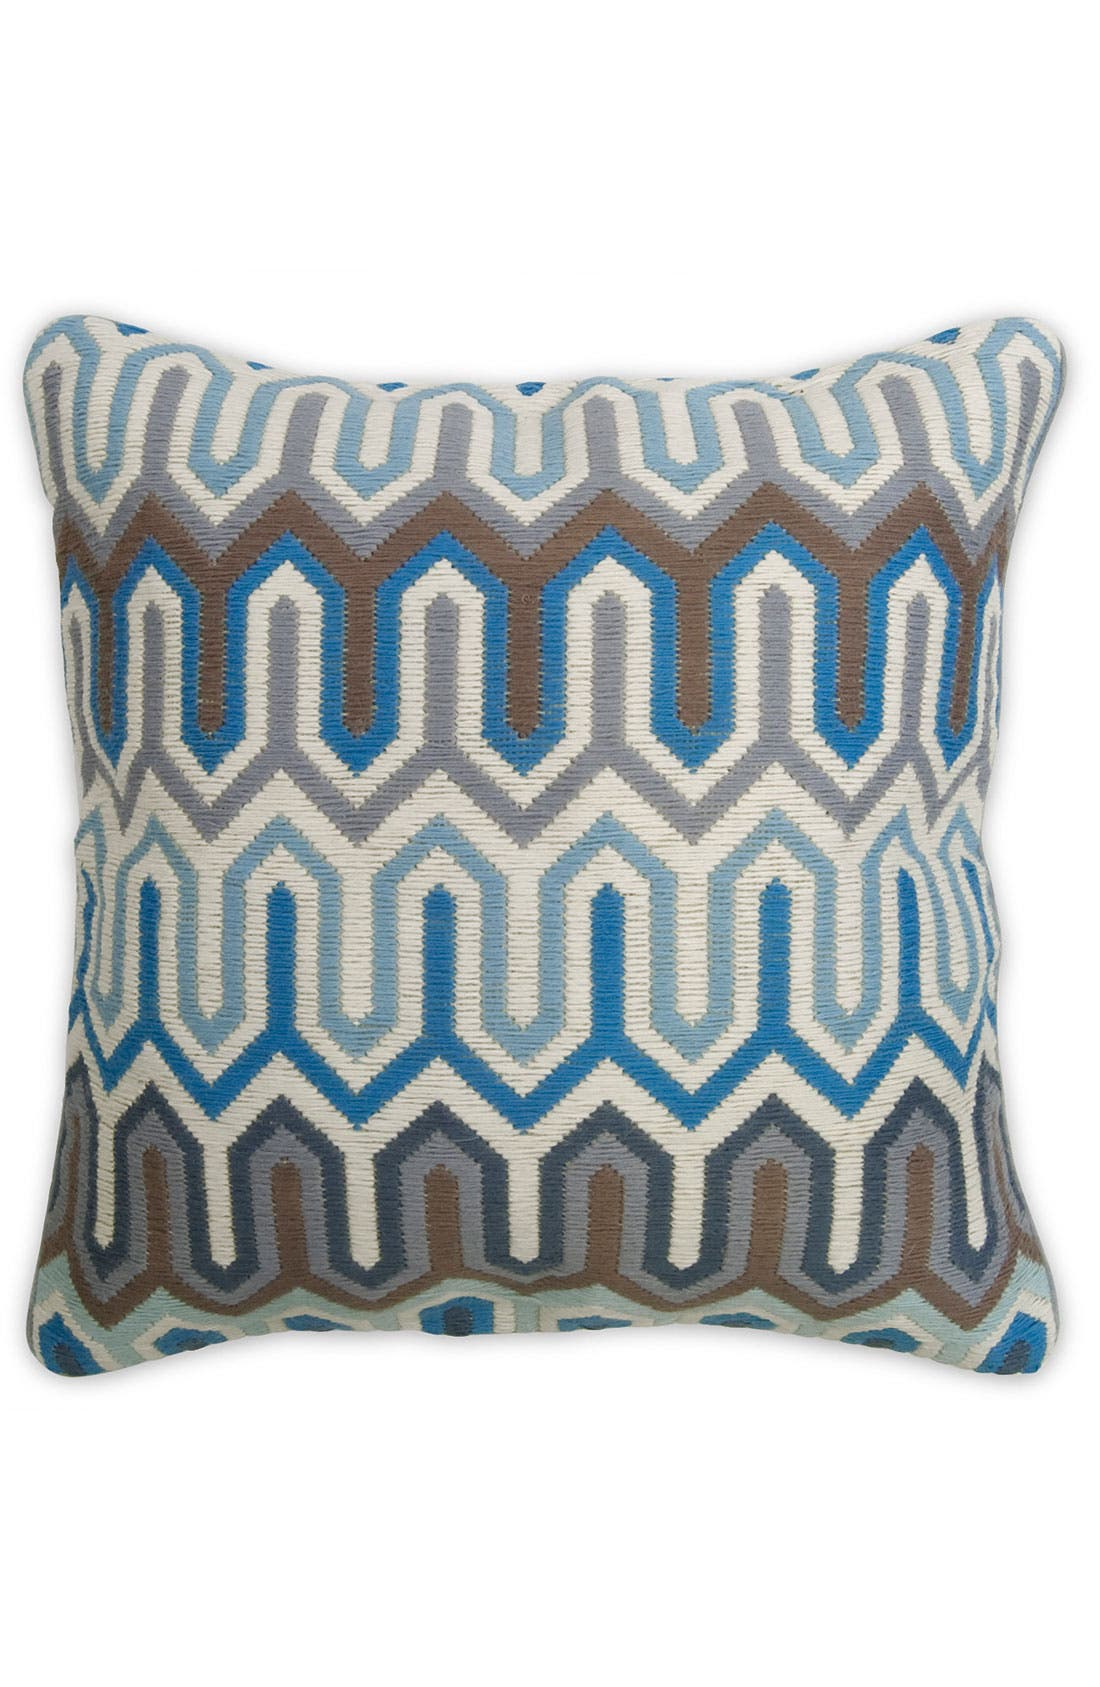 Main Image - Jonathan Adler 'Bargello Chevron' Pillow